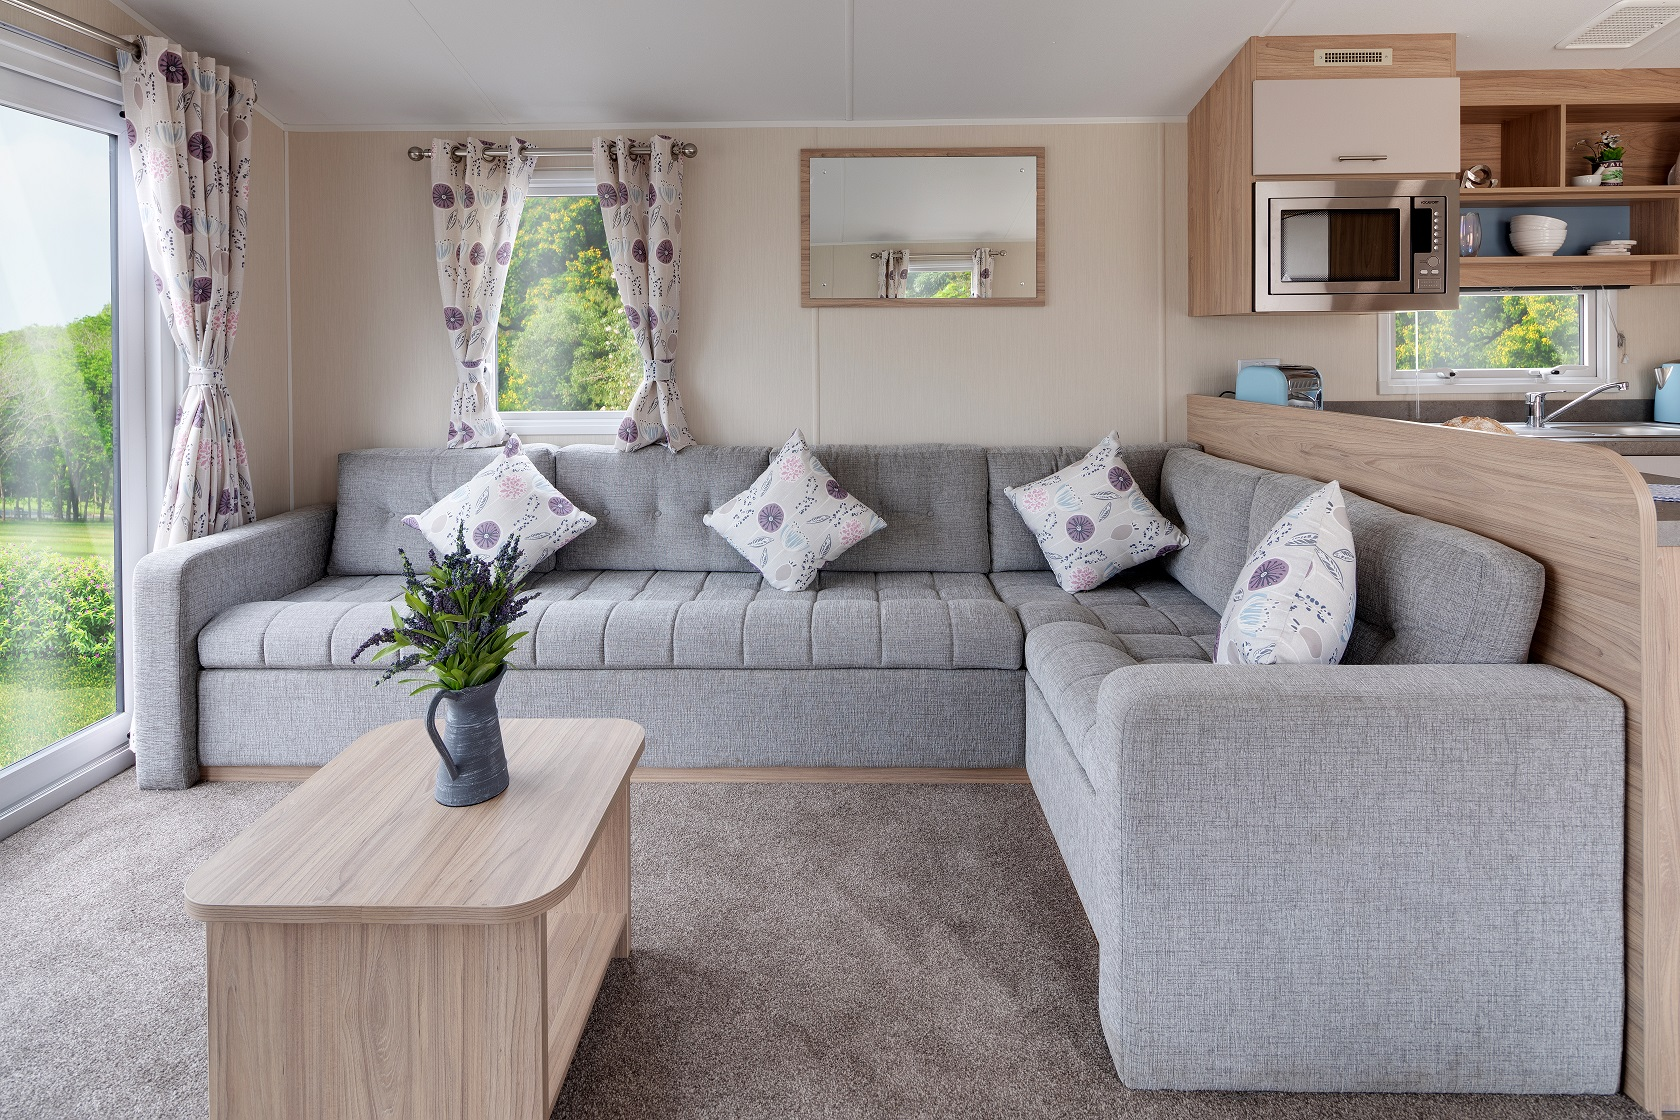 Willerby Linwood: New Static Caravans and Holiday Homes for Sale, Clifton, Morpeth Large Image 1